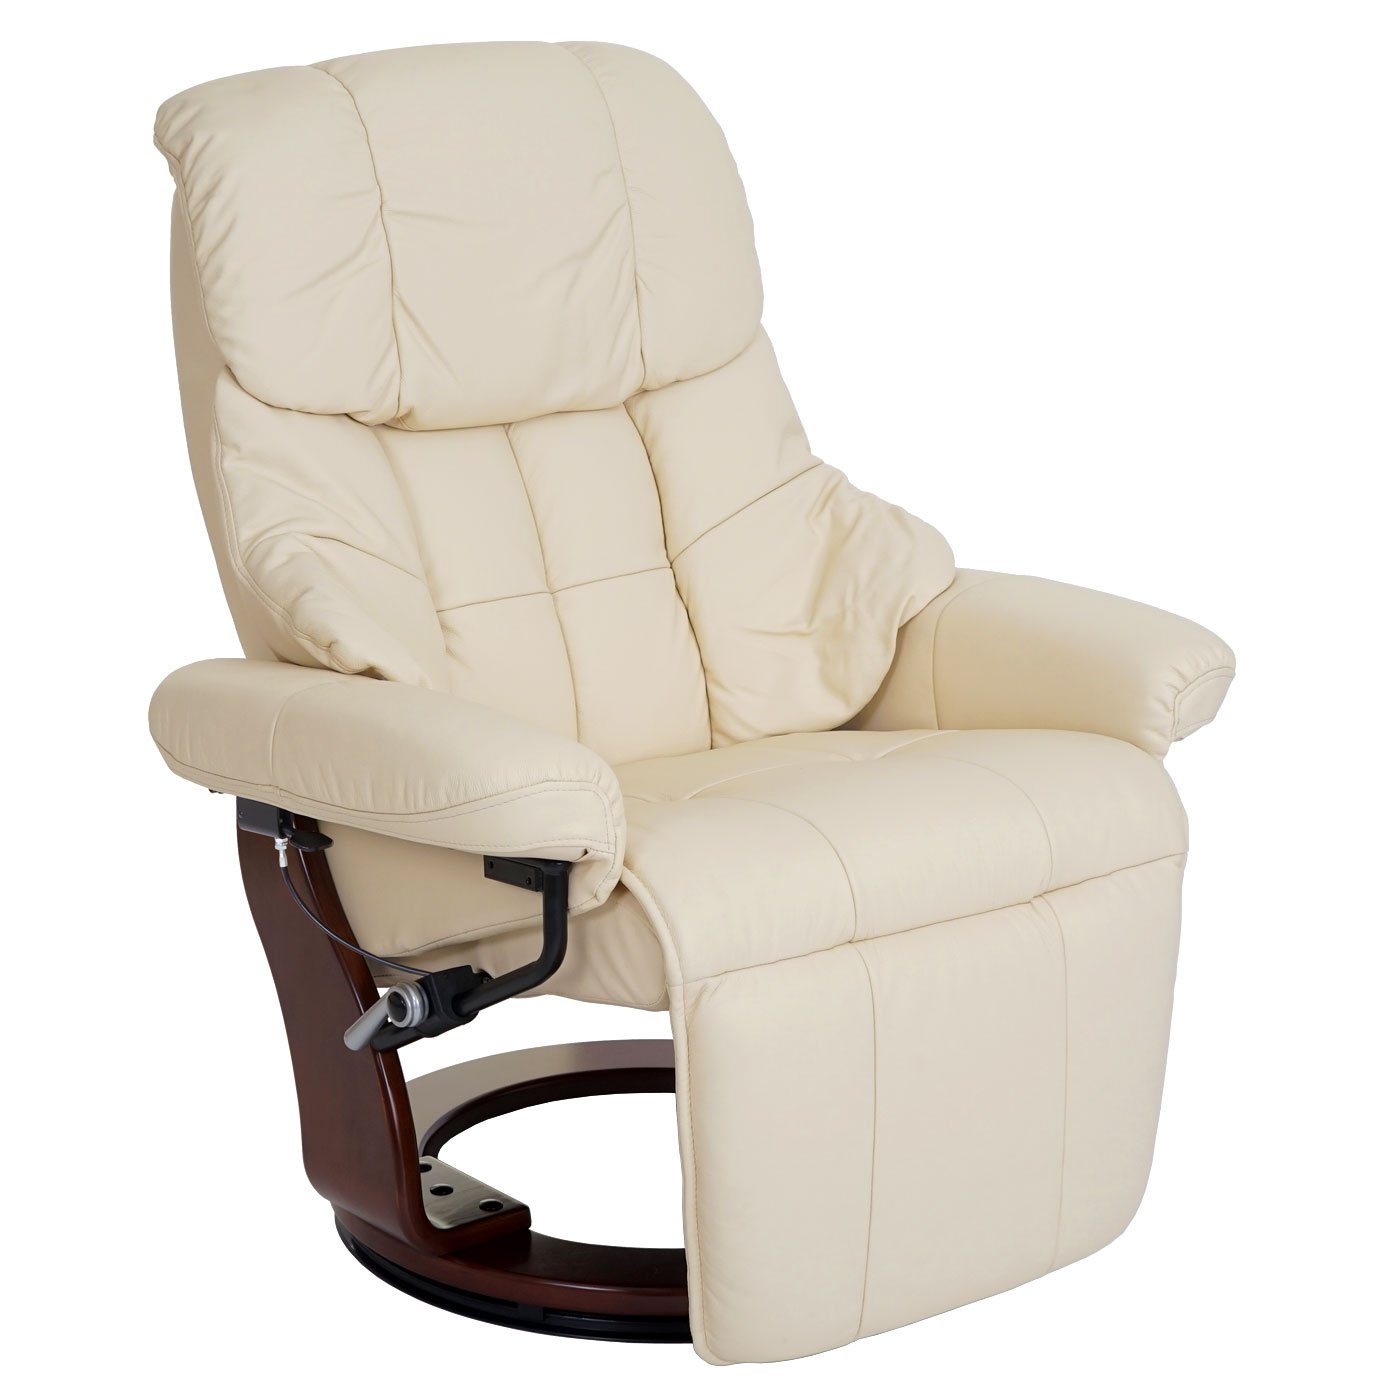 Mca Relax-sessel Calgary 2 Mca Fauteuil Relax De Télé Calgary 2 Cuir Charge 150kg